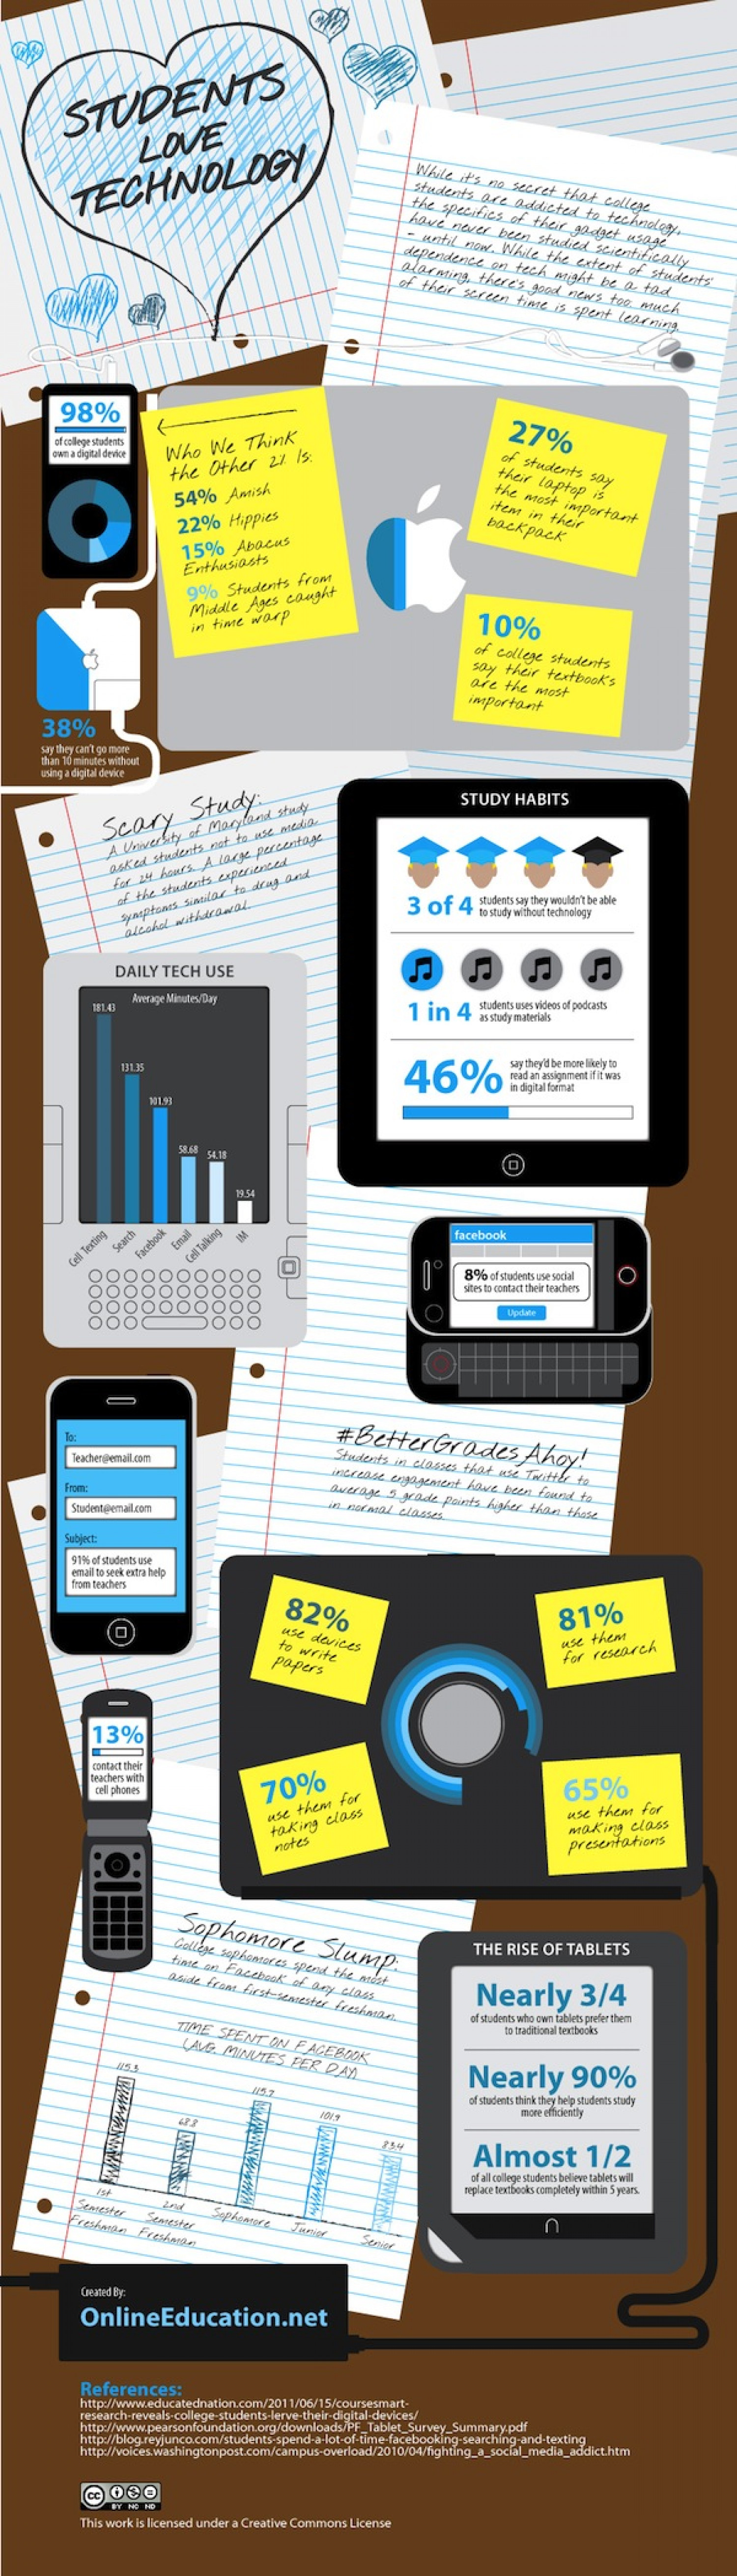 Students Love Technology Infographic